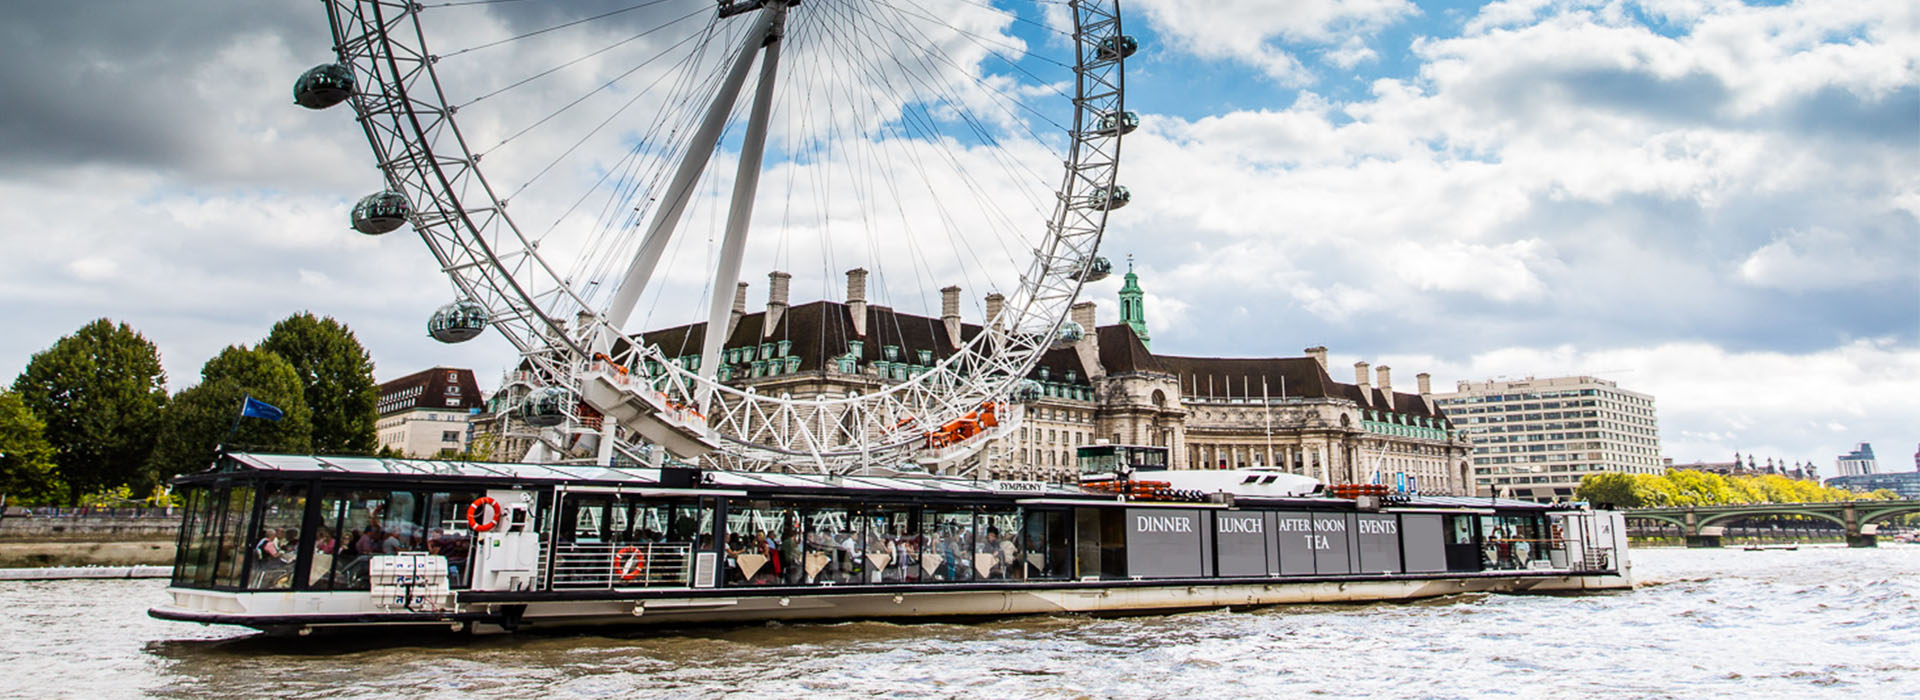 Glass House Luxury Boat - Luxury Boat Hire on the River Thames in London. Perfect London Venue for Award Ceremonies, VIP Parties, Gala Dinners and Corporate Events.